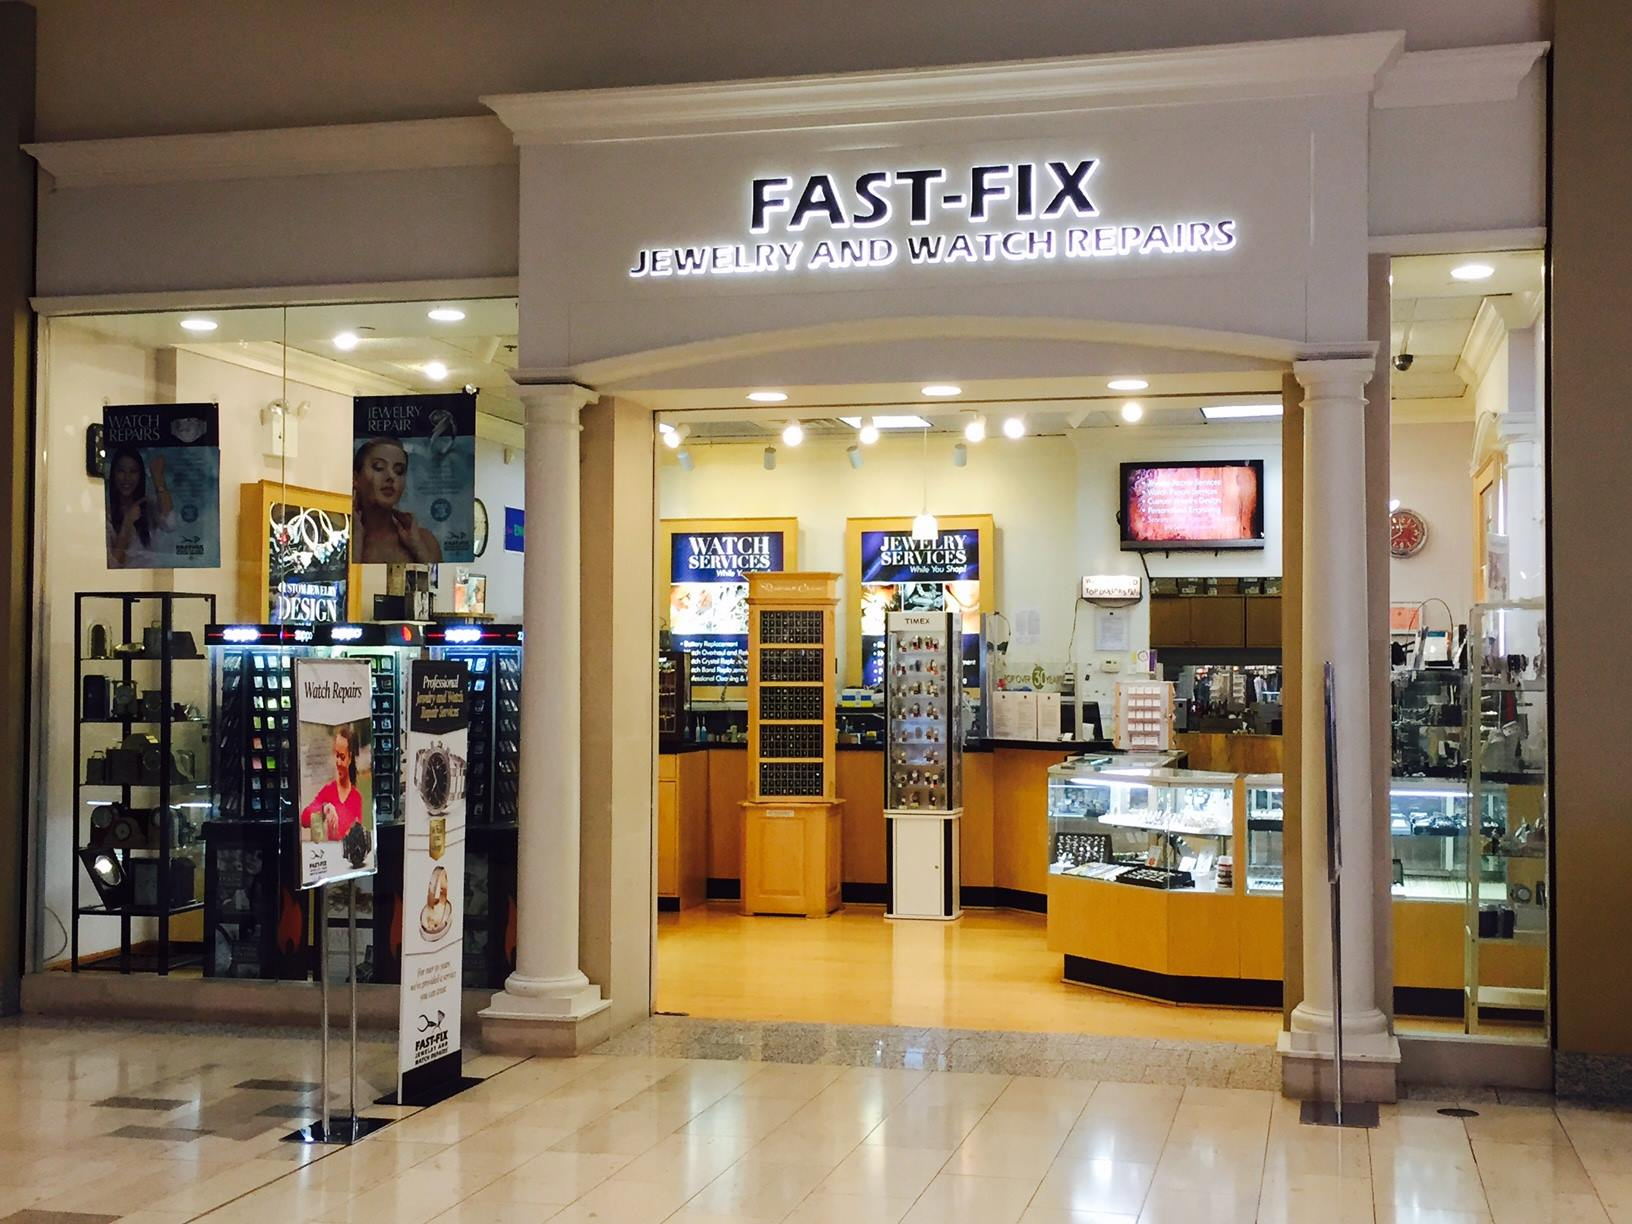 Store front of a Fast Fix Jewelry and Watch Repairs store at Staten Island Mall. Shows 2 white pillars with glass walls showing the interior of the store